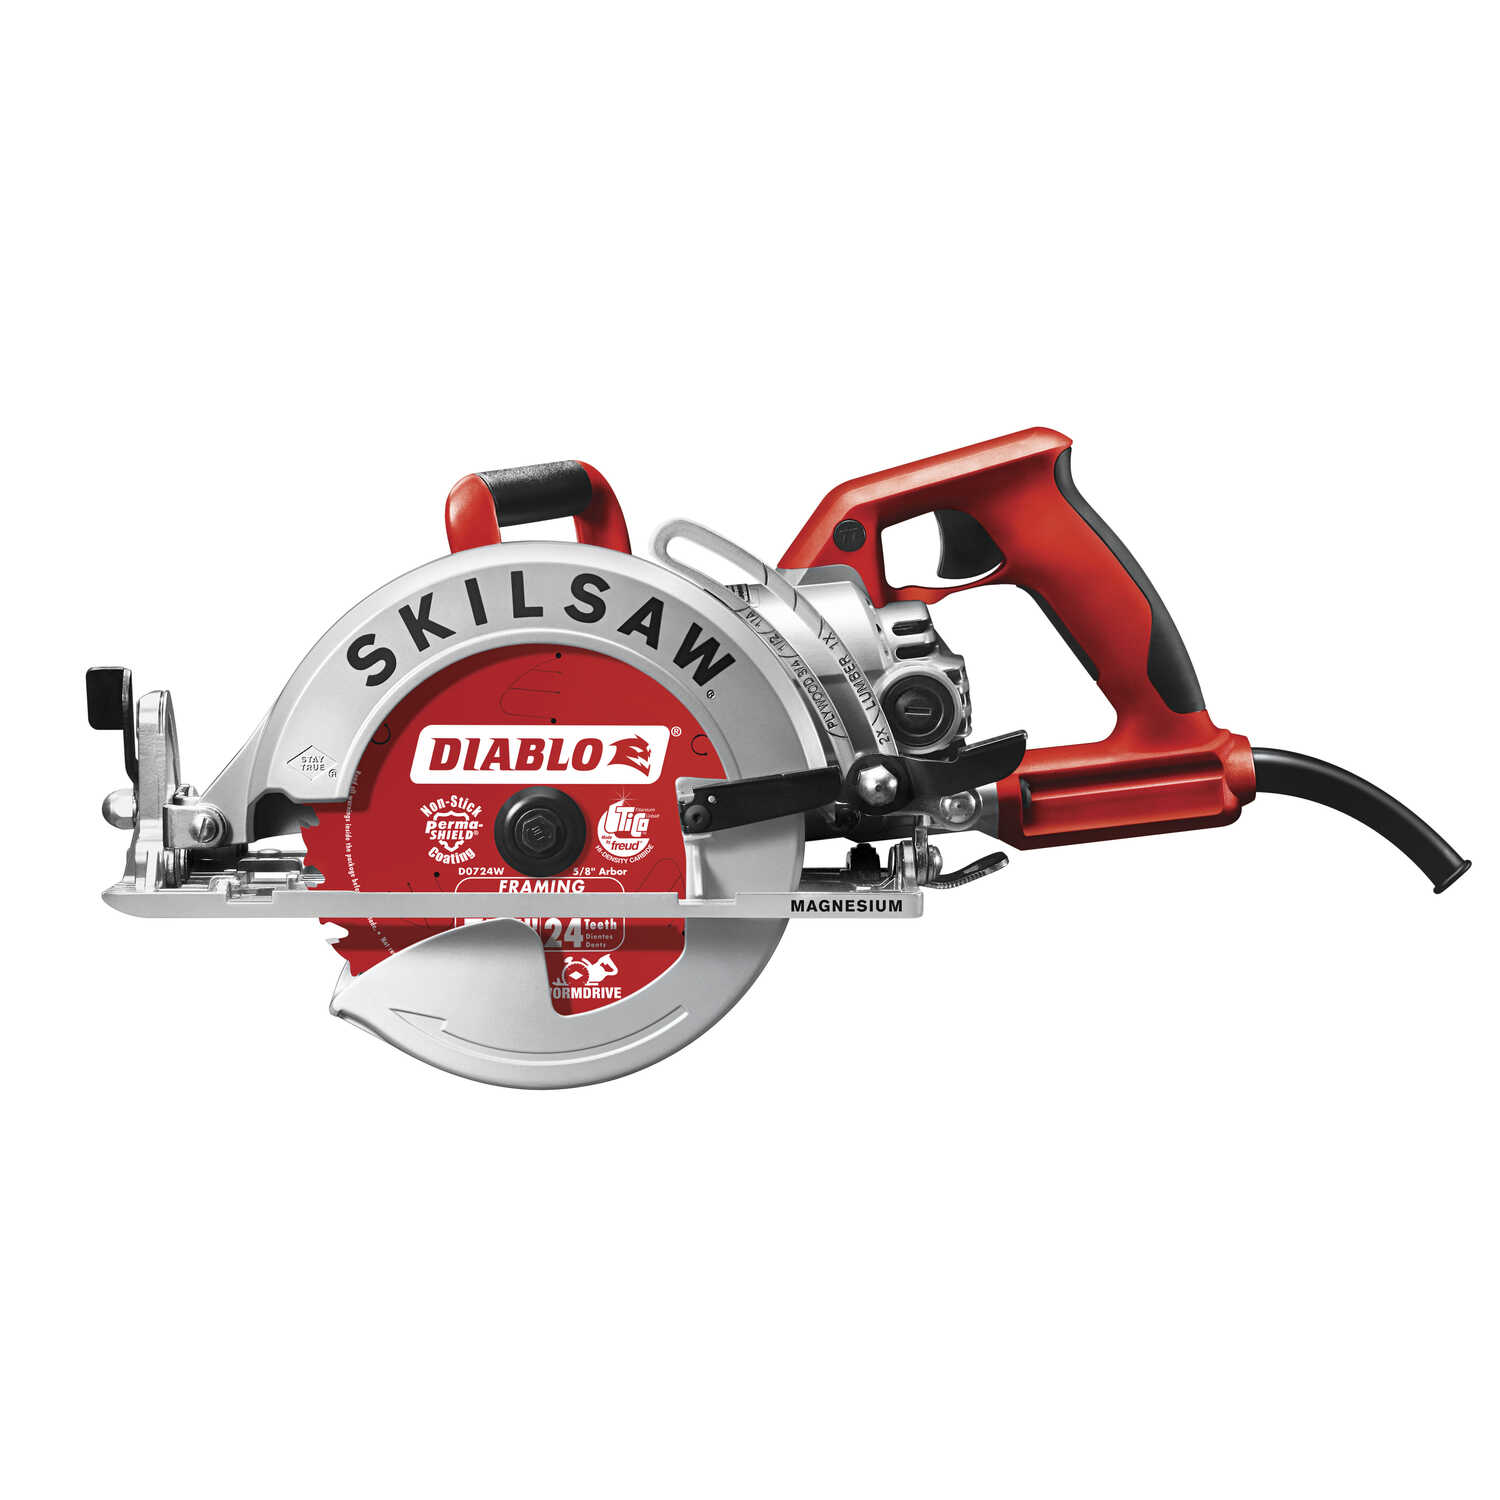 SKILSAW  7-1/4 in. Corded  15 amps Worm Drive Mag Saw  Kit  5300 rpm